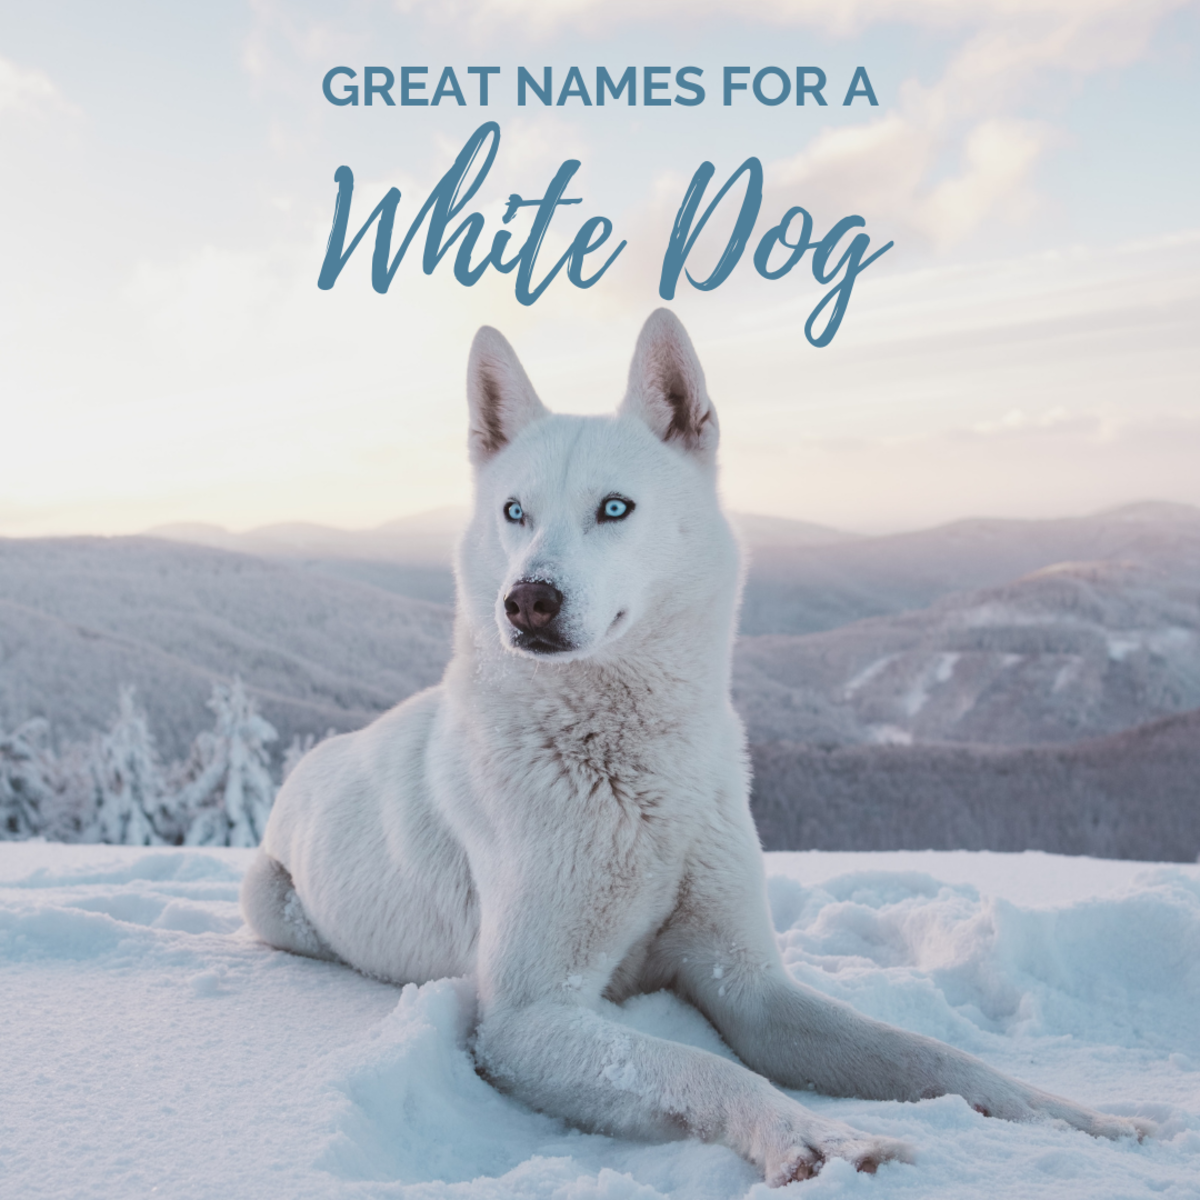 What should you name a white dog?